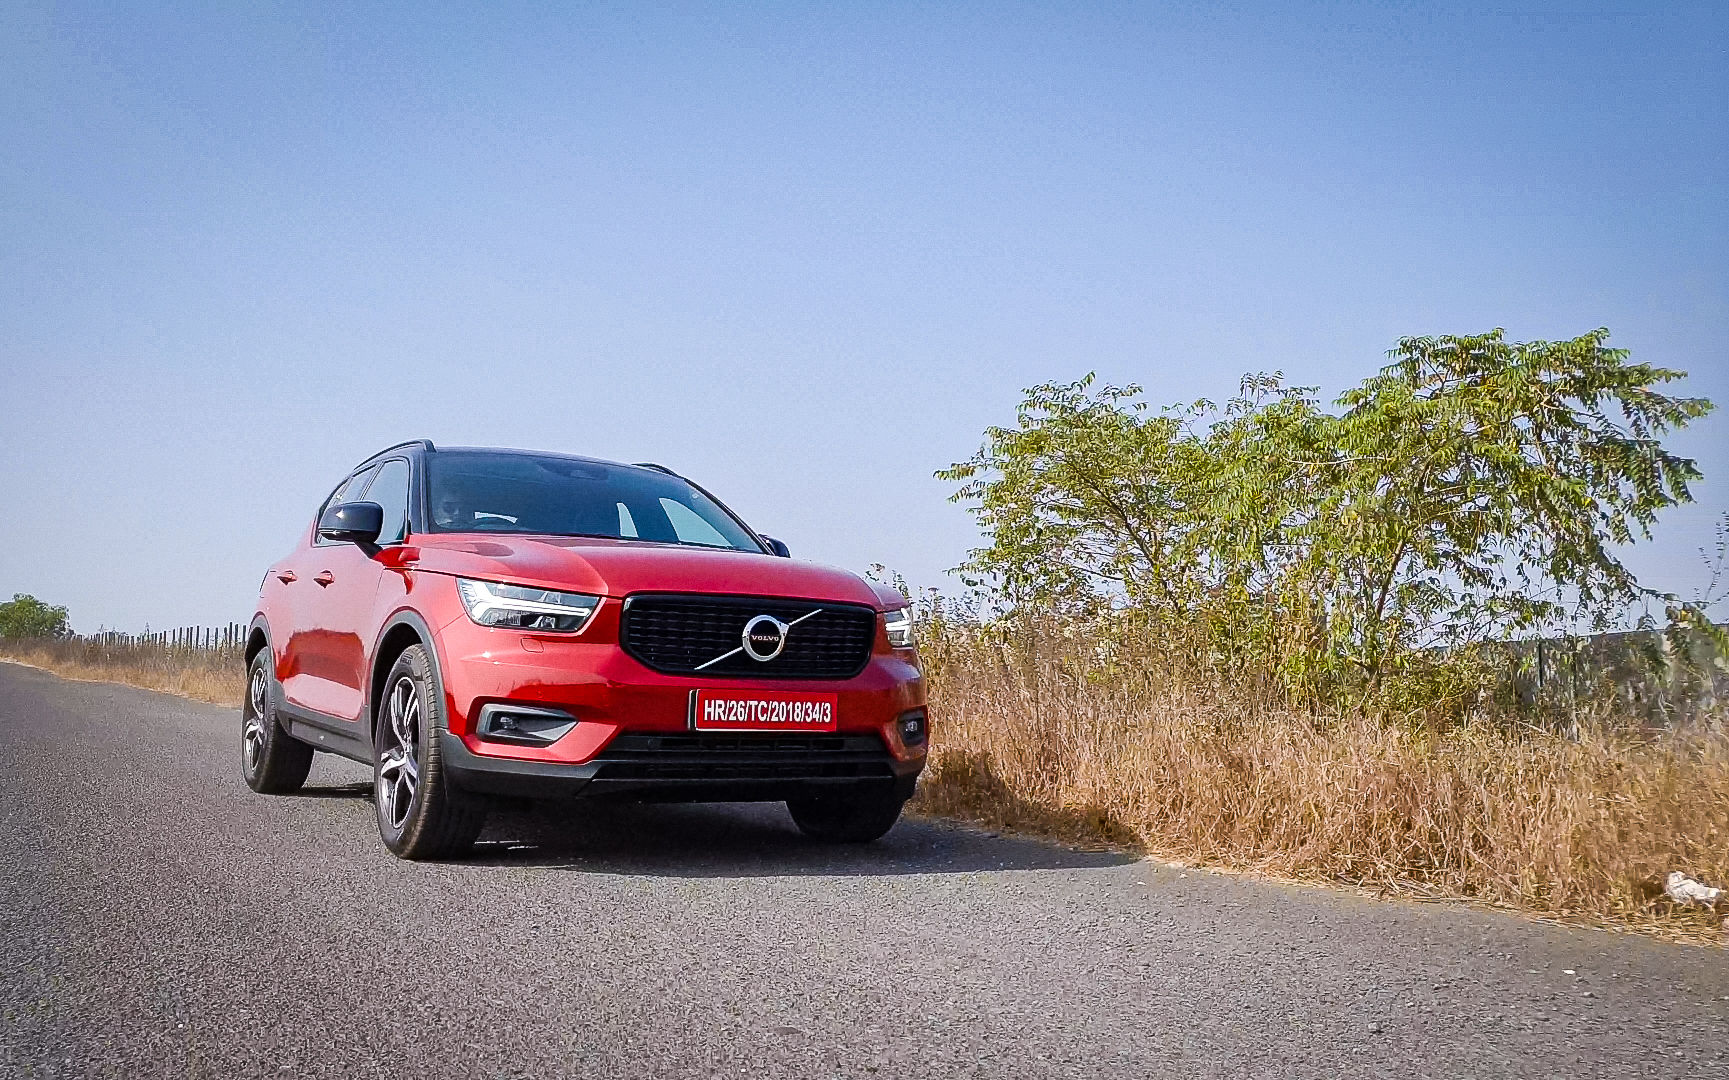 The SUV gets radar-based safety which is highlighted by lane assist system, adaptive cruise control, collision mitigation system, ABS with EBD, 360 degree proximity sensors, tyre pressure monitoring system, six airbags, hill descent control, reverse camera, among many others. (HT Auto photo)